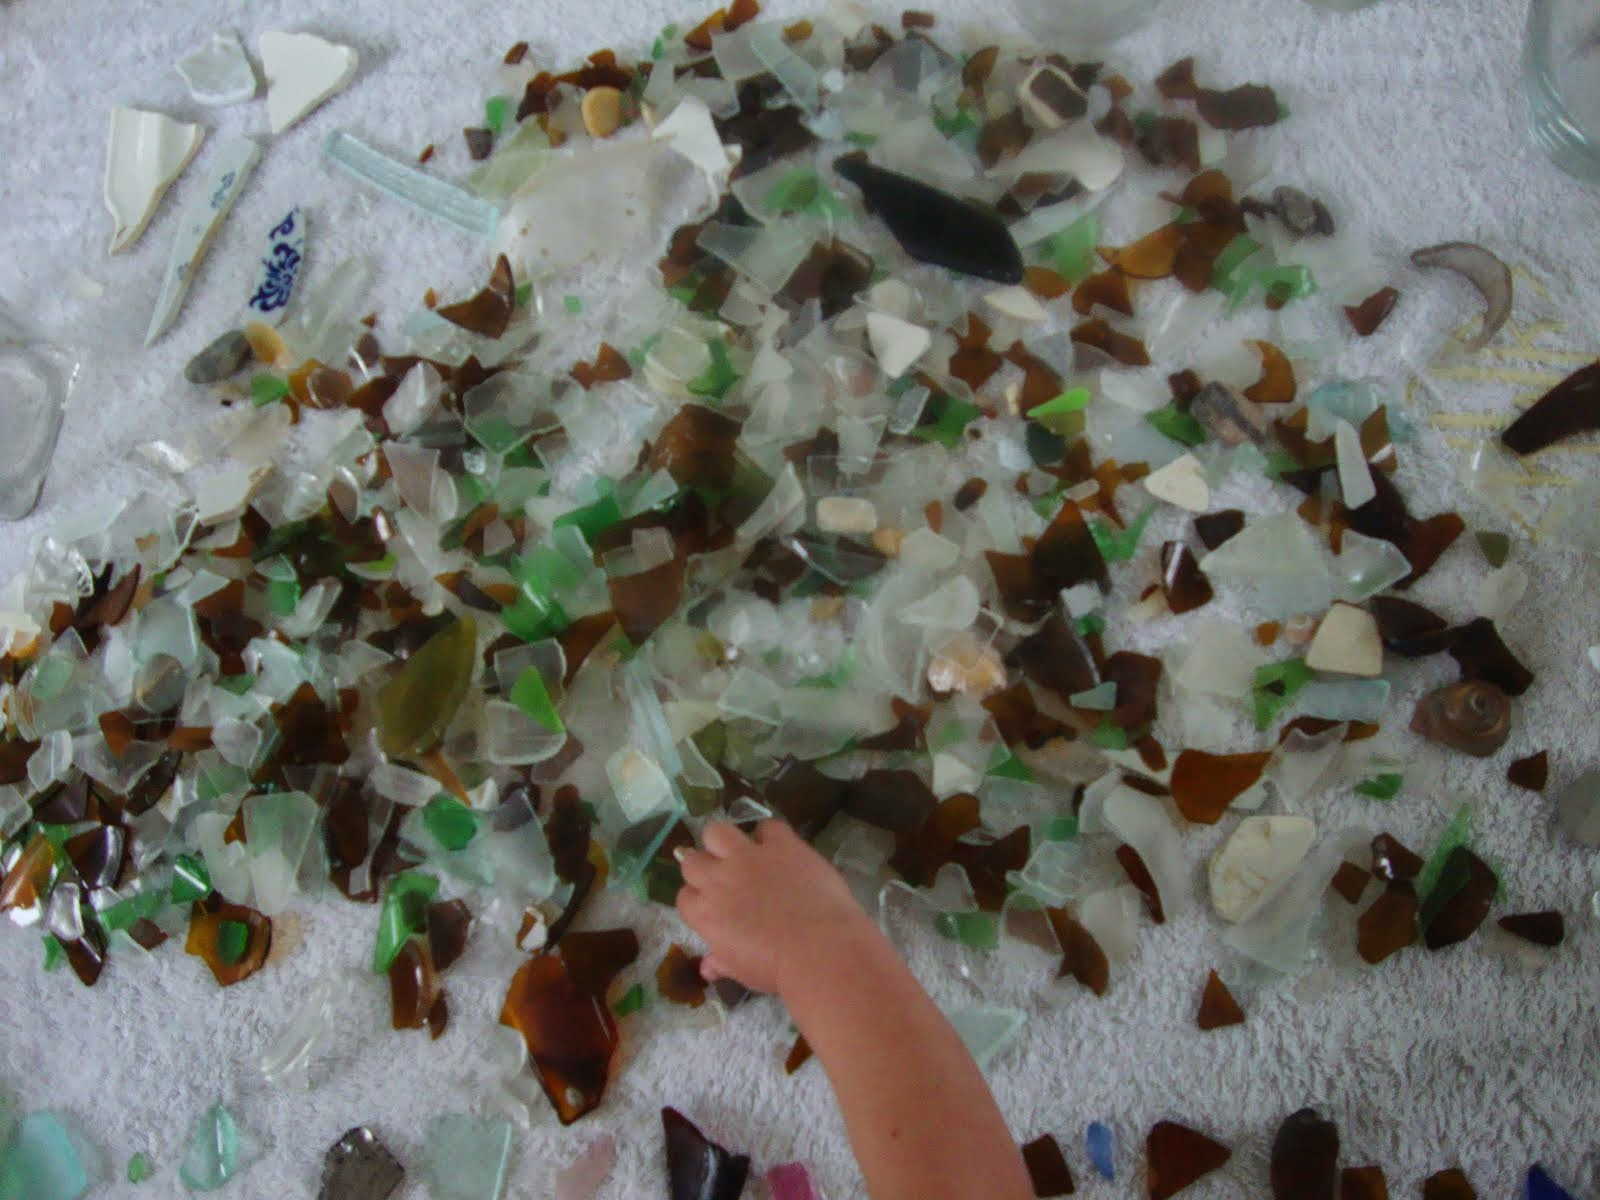 Sorting Sea Glass